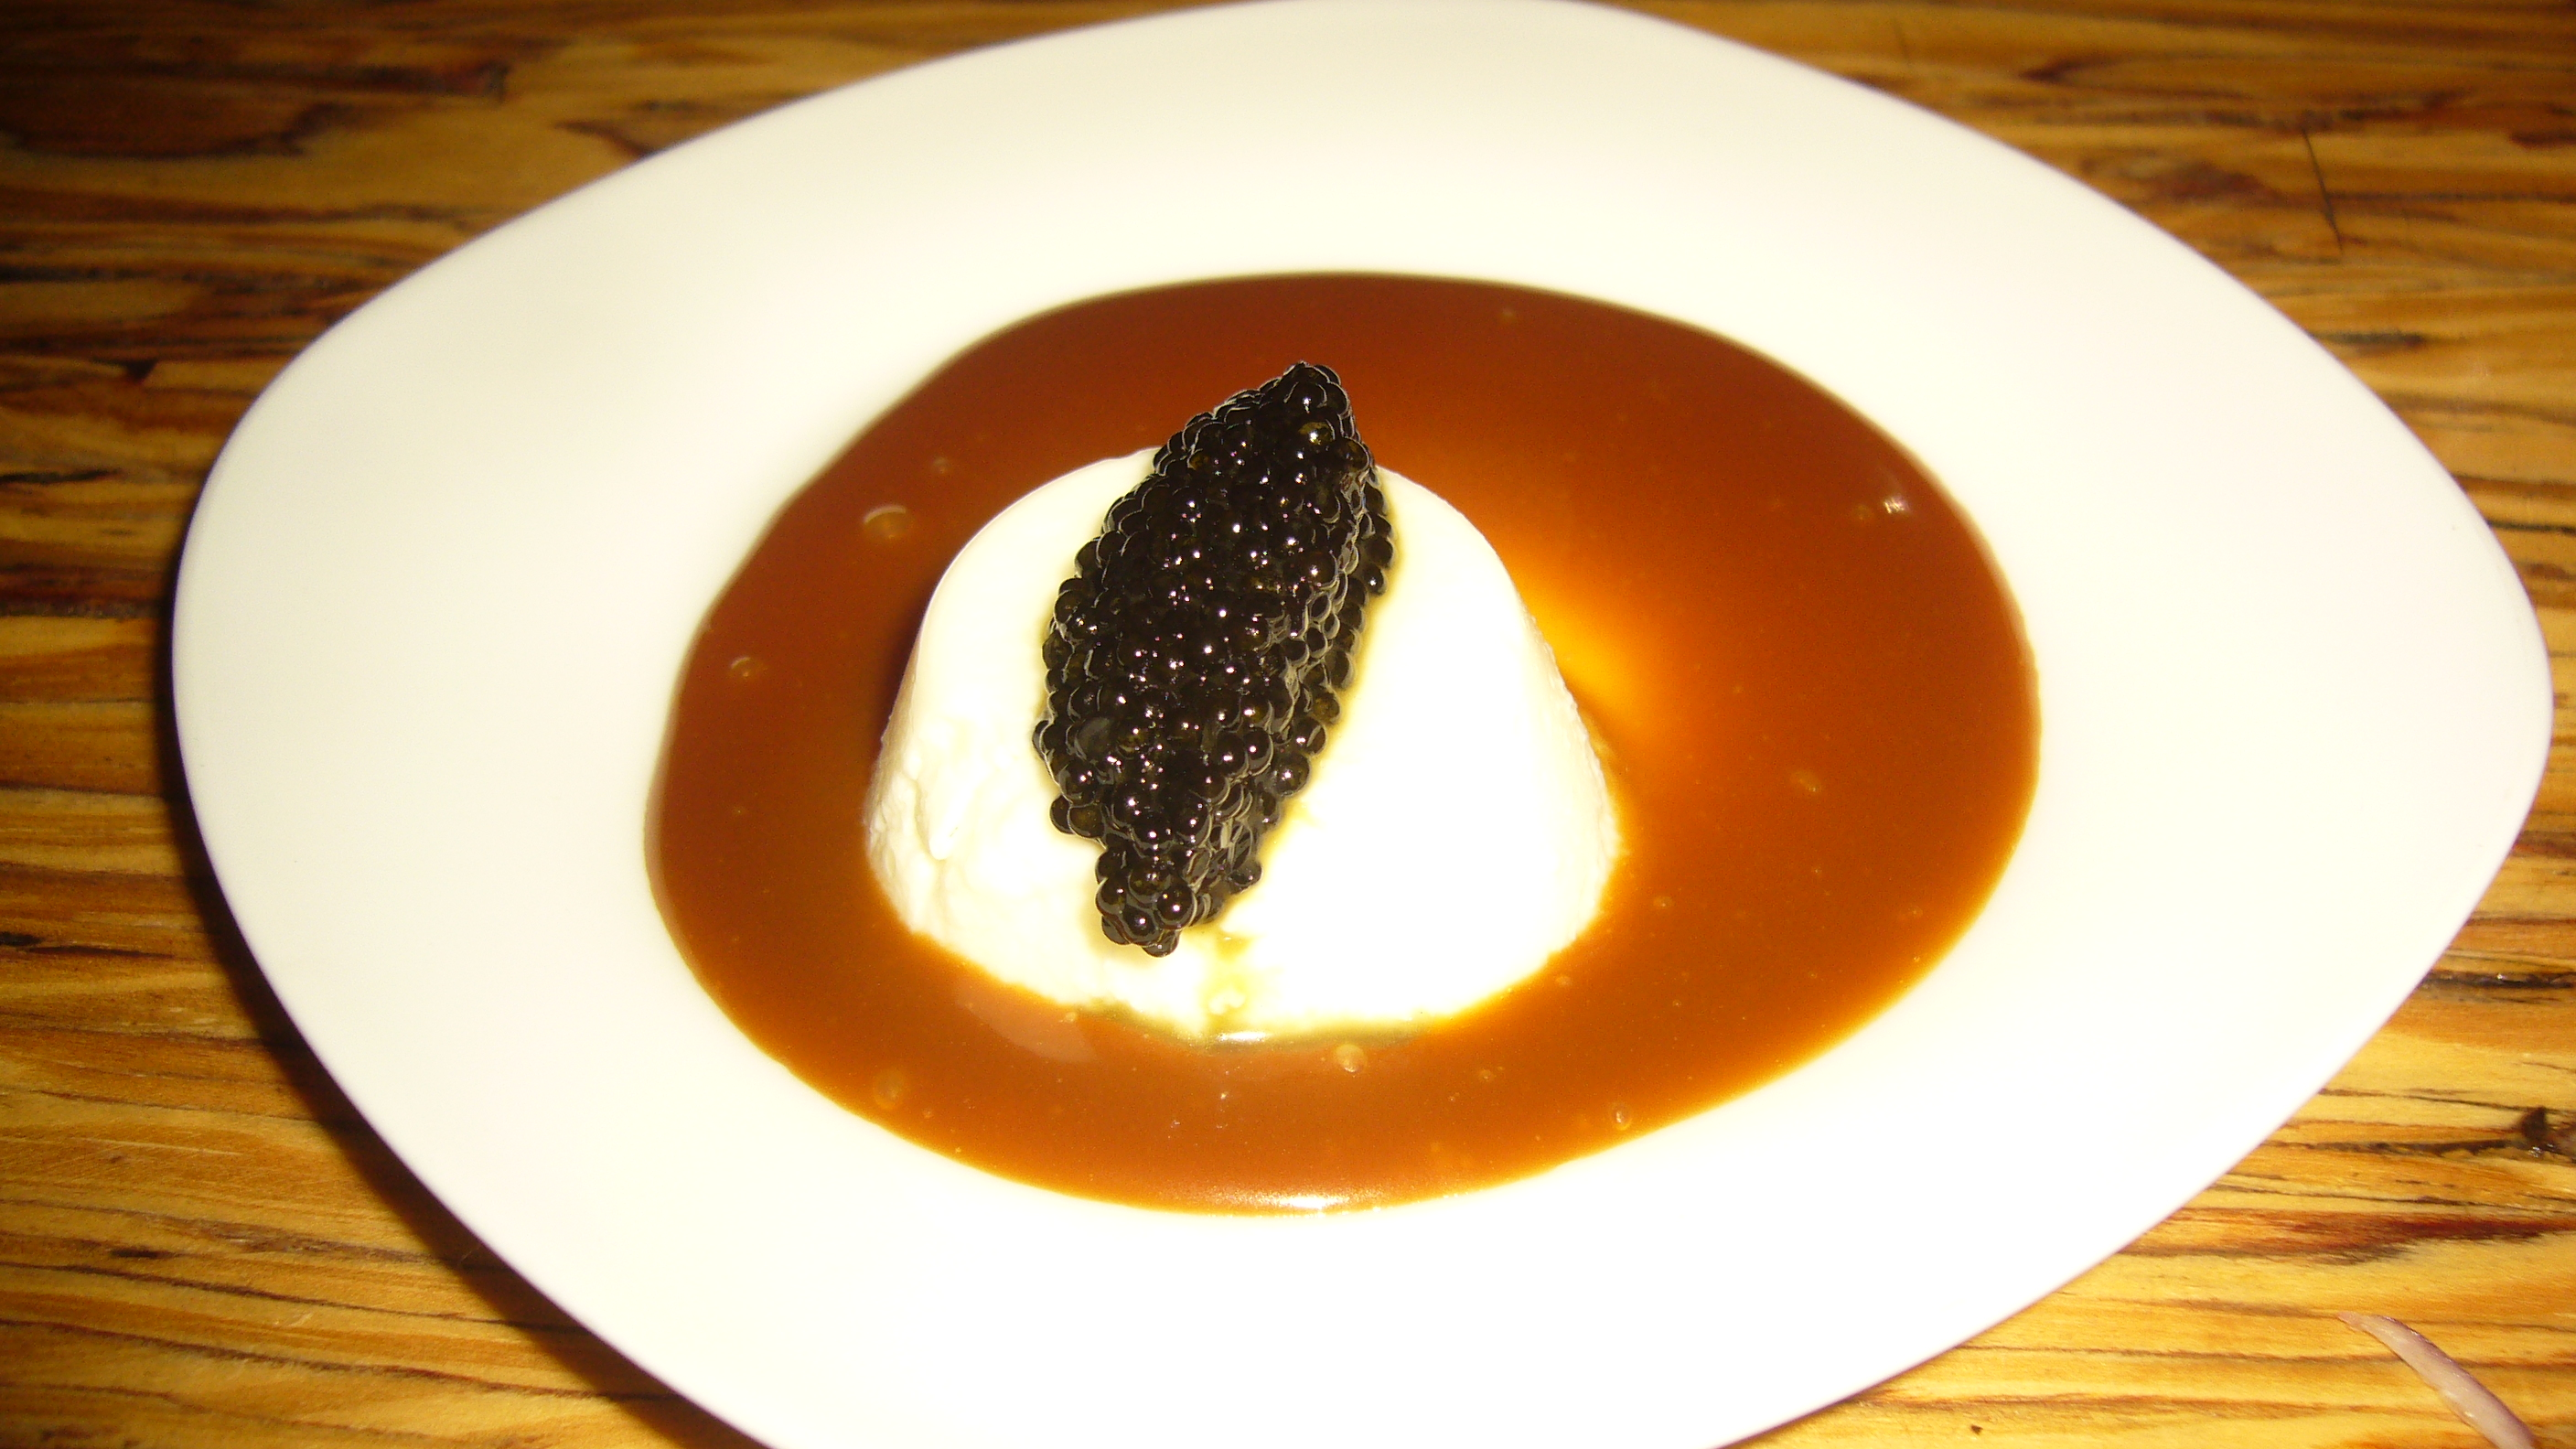 Creme Fraiche Panna Cotta with Caramel and Caviar is perfectly executed contrast in flavors; the soft, creamy panna cotta is enveloped by the sweet, smooth caramel and then taken to an entirely new level by the salty, burst in your mouth caviar.